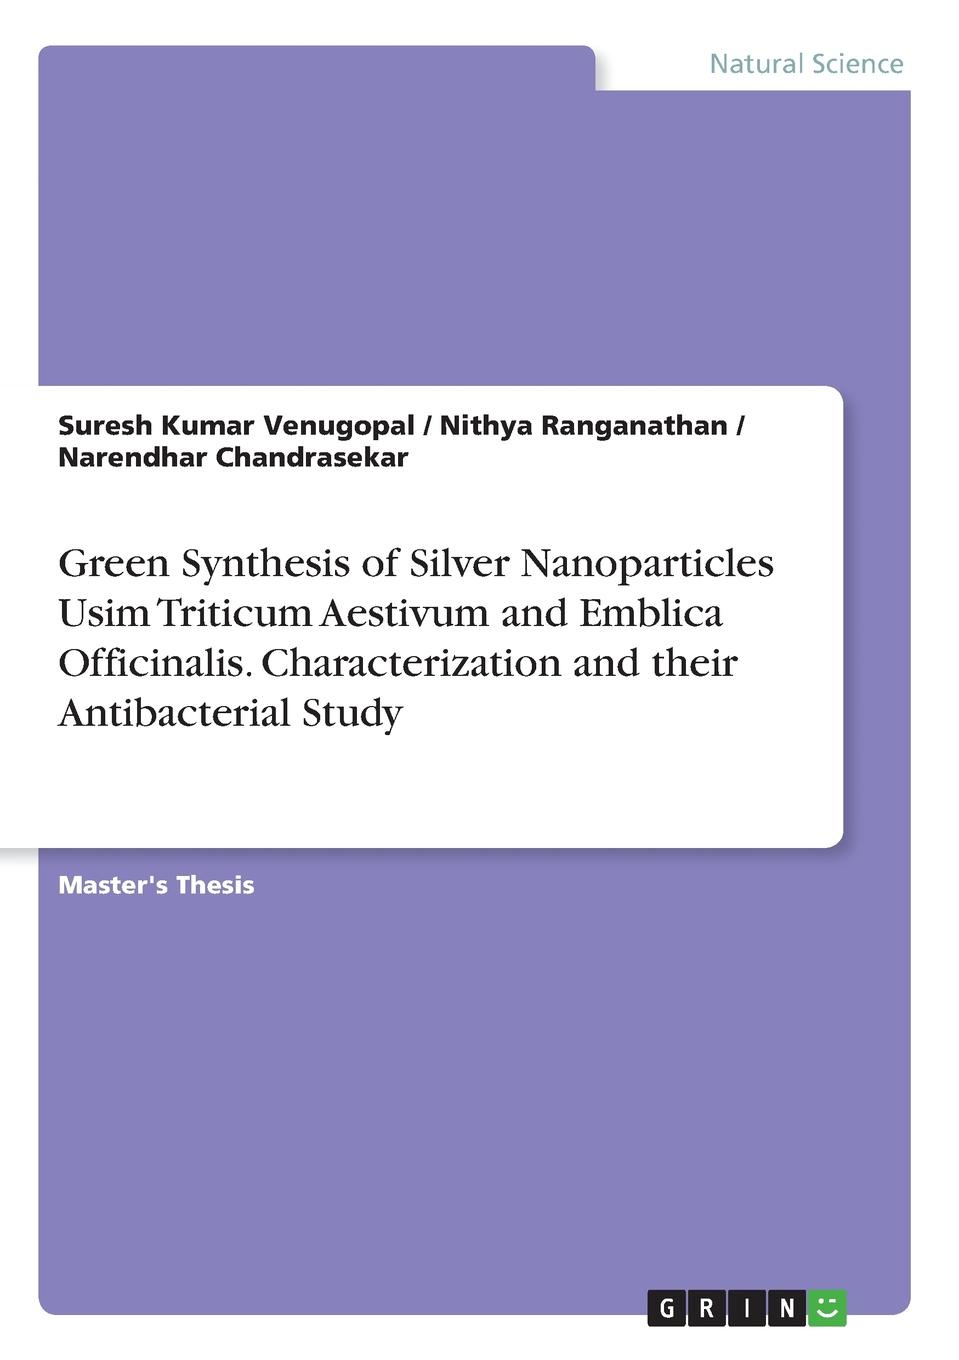 Suresh Kumar Venugopal, Nithya Ranganathan, Narendhar Chandrasekar Green Synthesis of Silver Nanoparticles Usim Triticum Aestivum and Emblica Officinalis. Characterization and their Antibacterial Study недорго, оригинальная цена